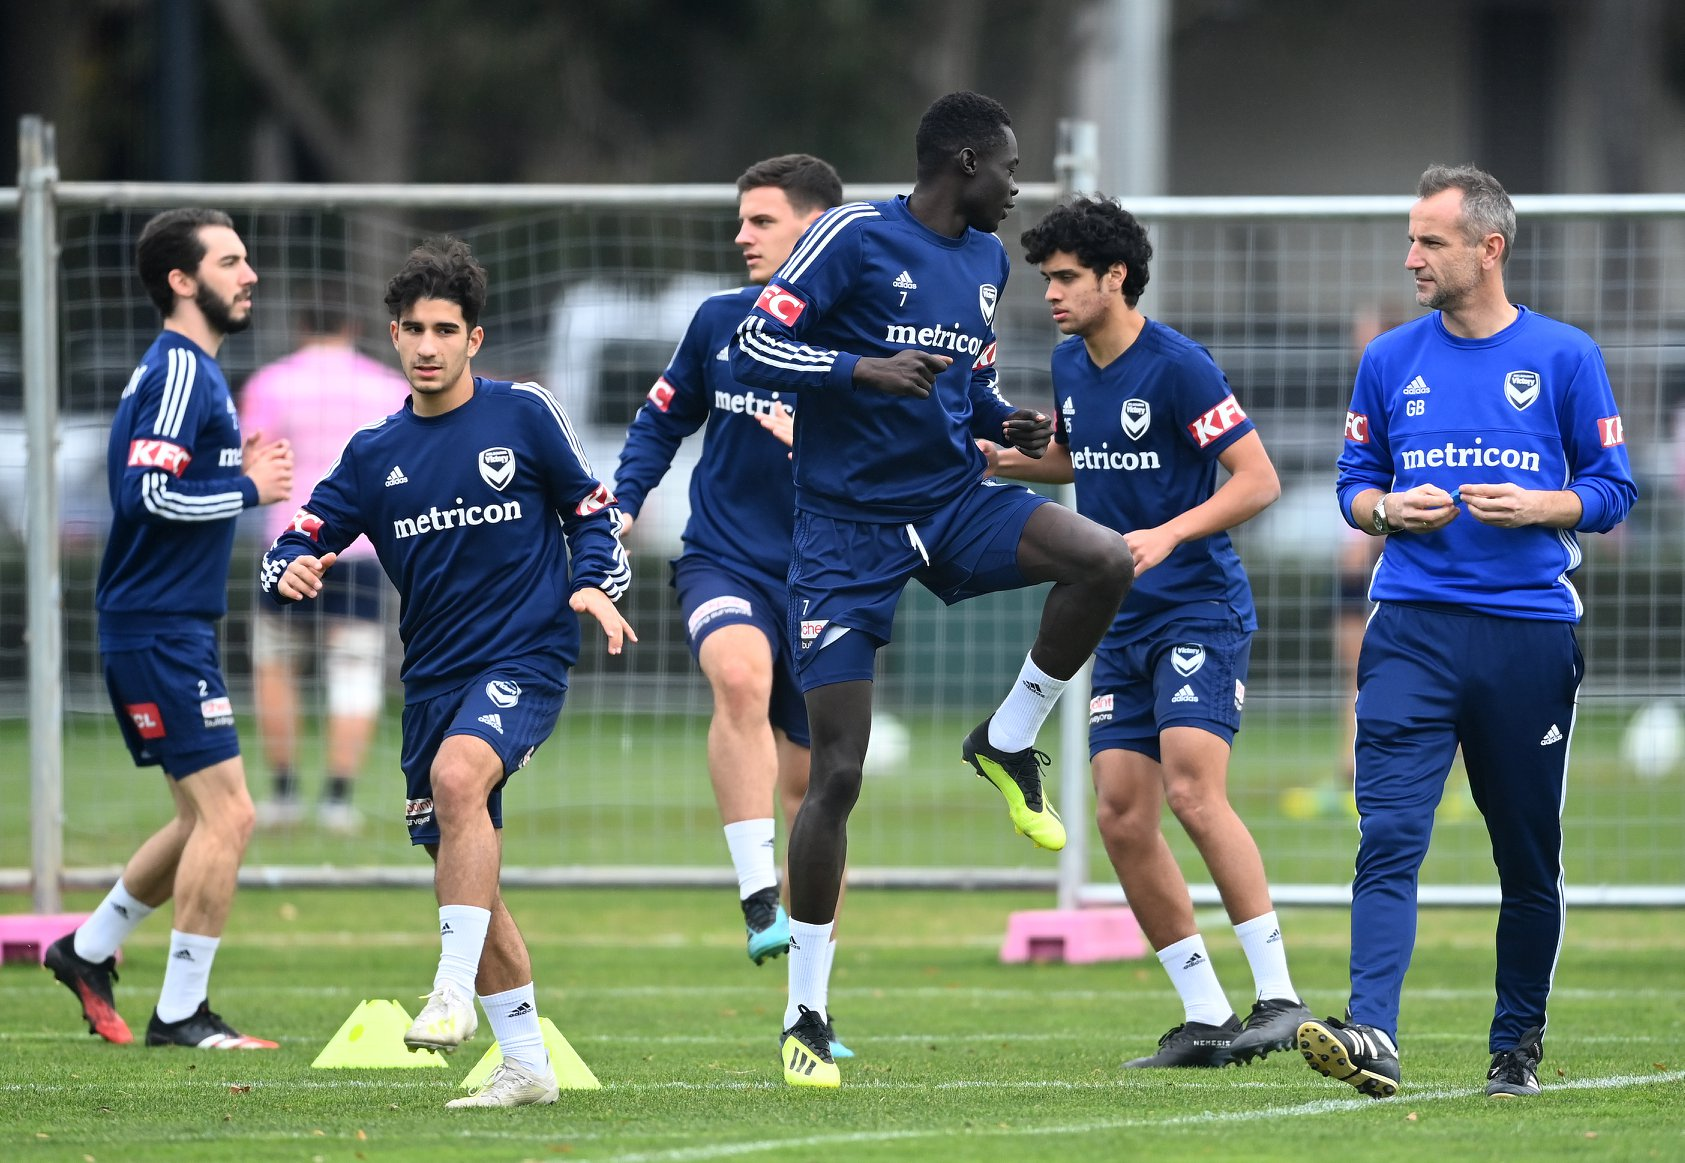 soi-keo-melbourne-victory-vs-central-coast-mariners-vao-16h30-ngay-3-8-2020-1